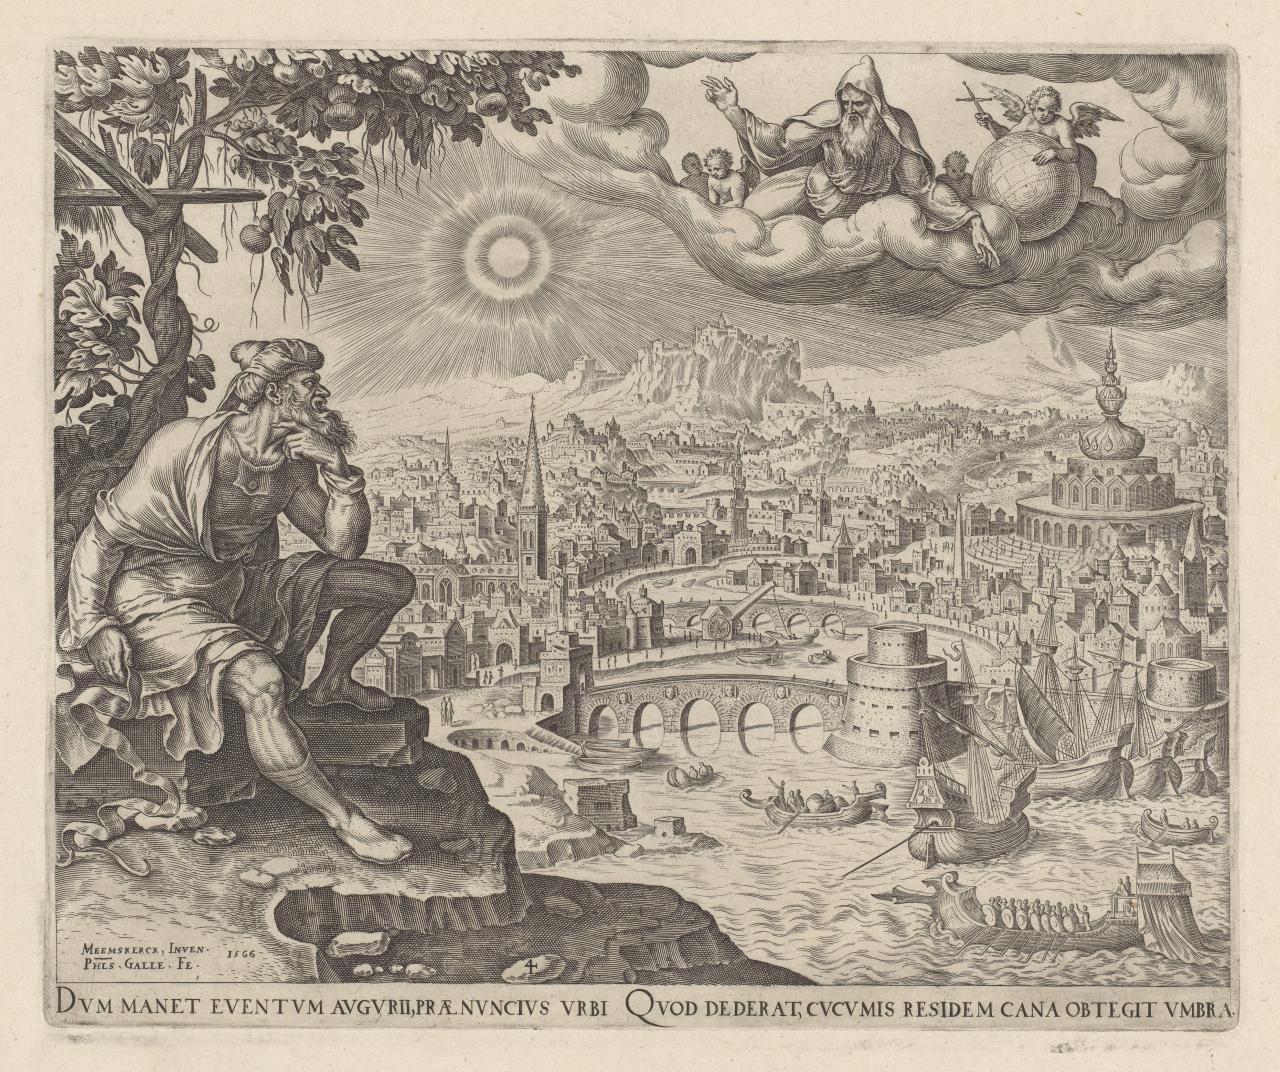 Jonah Watching over the City of Nineveh